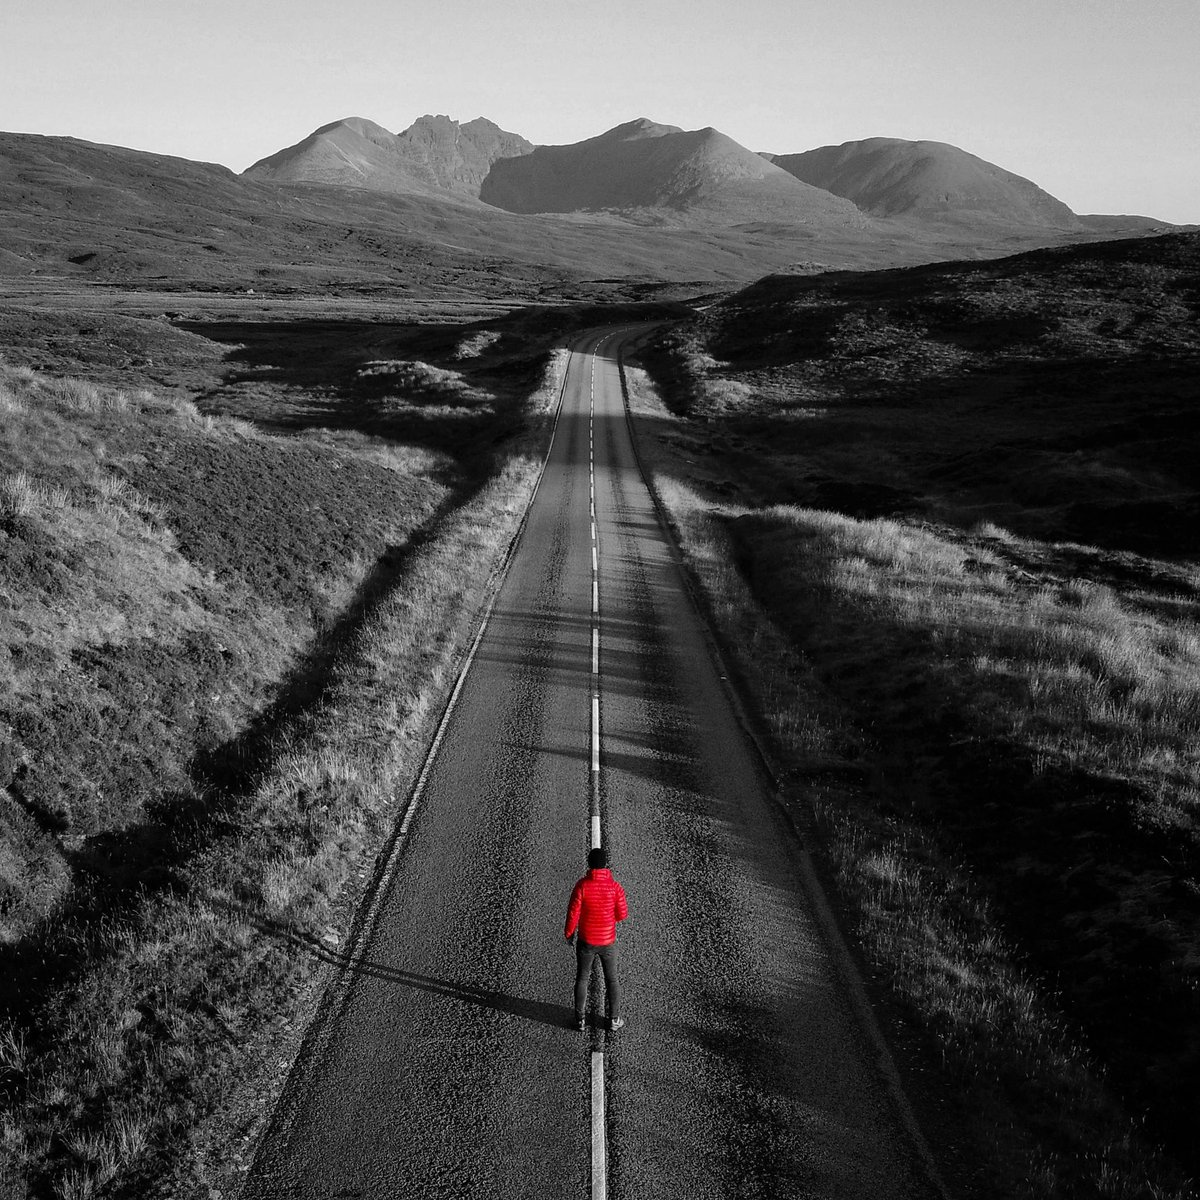 Yours truly posing on the road to An Teallach with my trusty DJI Phantom 4 Pro obsidian drone #thisismyadventure #droneselfies #drone #dji #phantom4pro @DJIGlobal